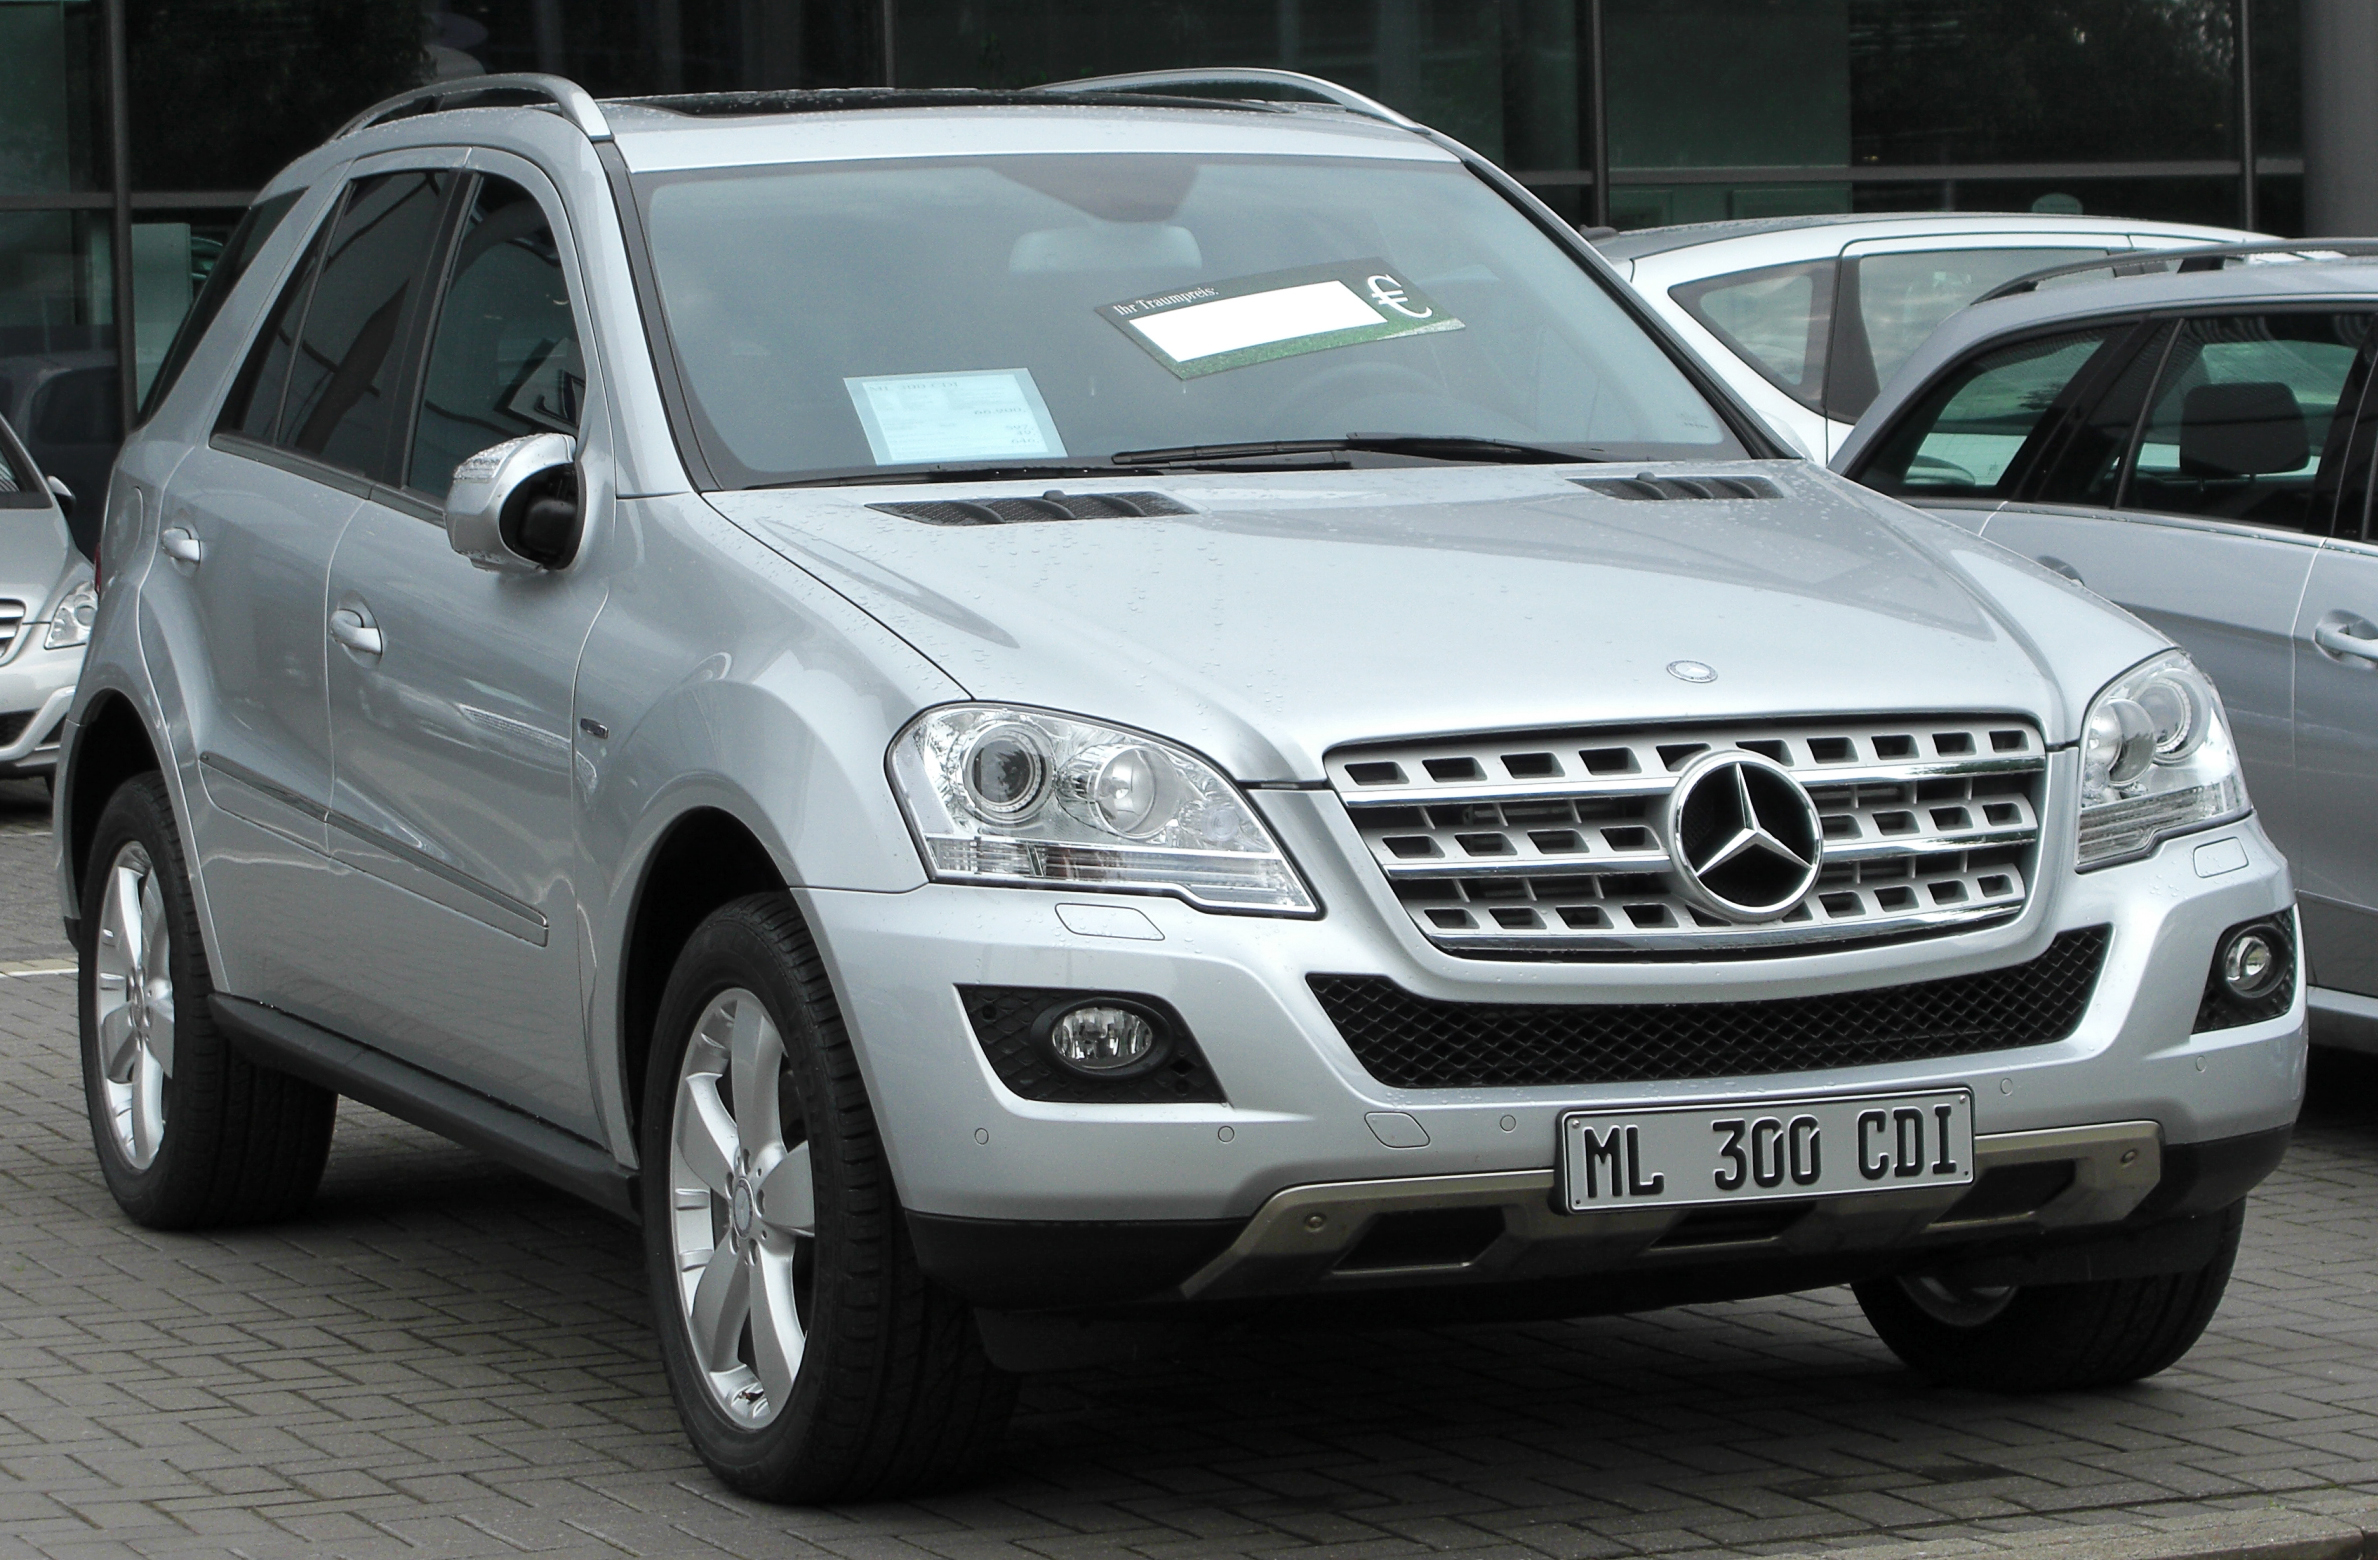 image gallery 2010 mercedes ml